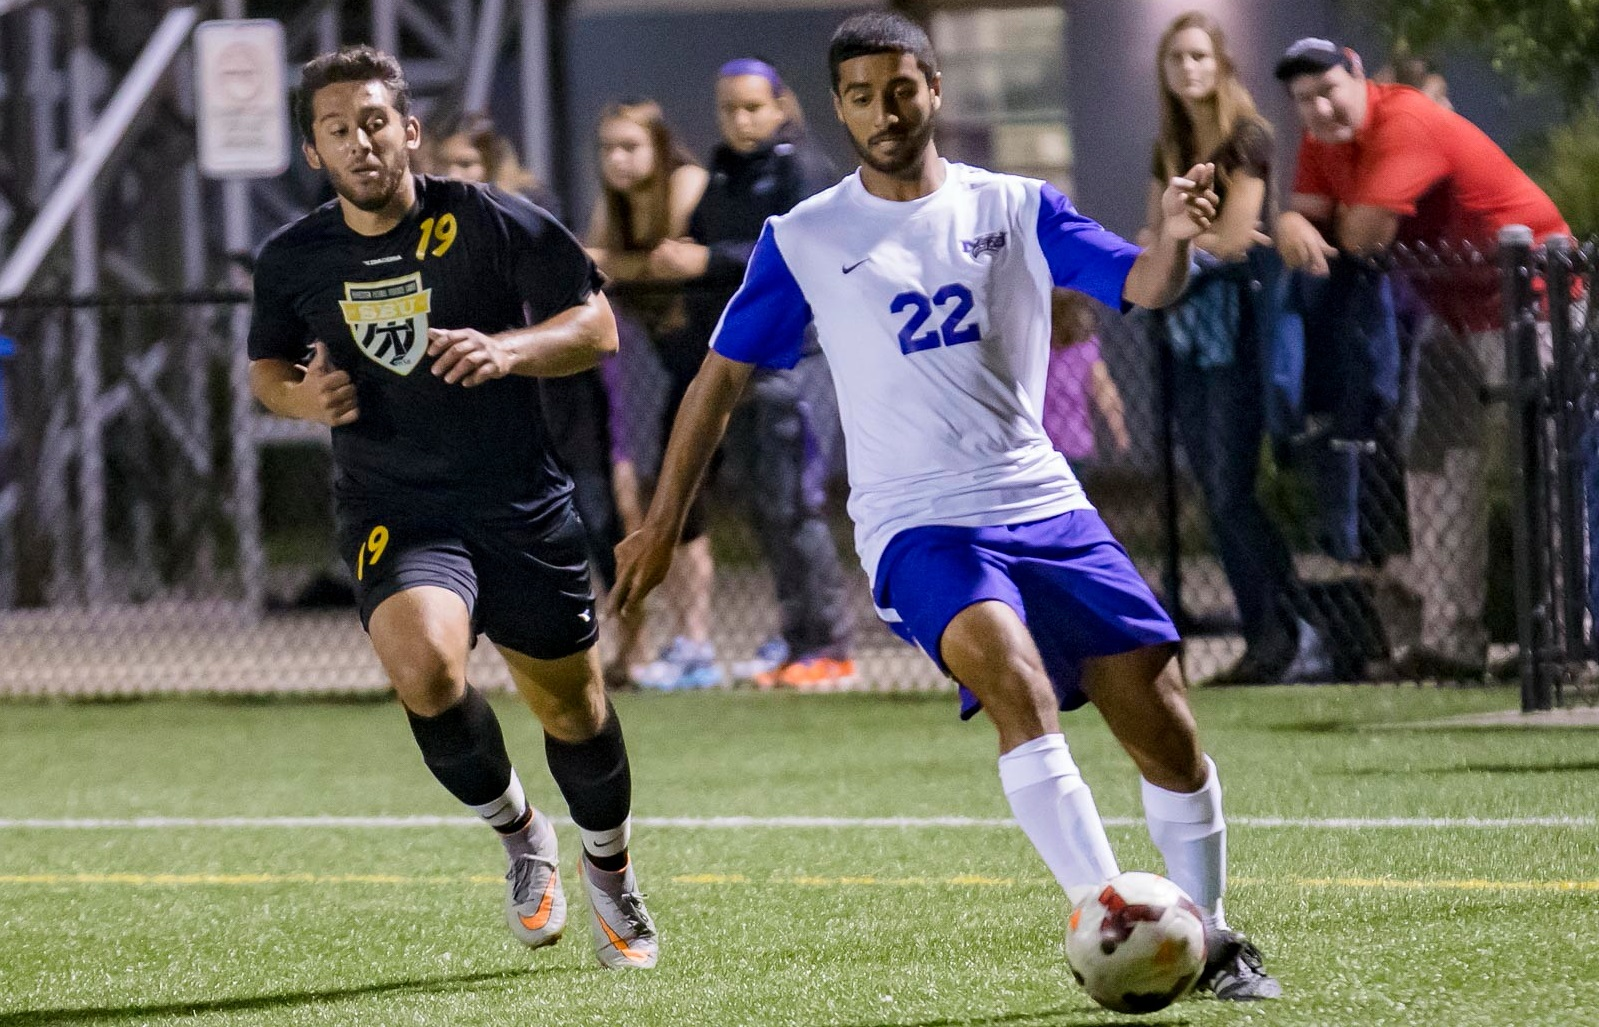 Adel Rahman, right, played a reserve midfield role for the Purple Eagles last fall. (Don Nieman/Special to The News)